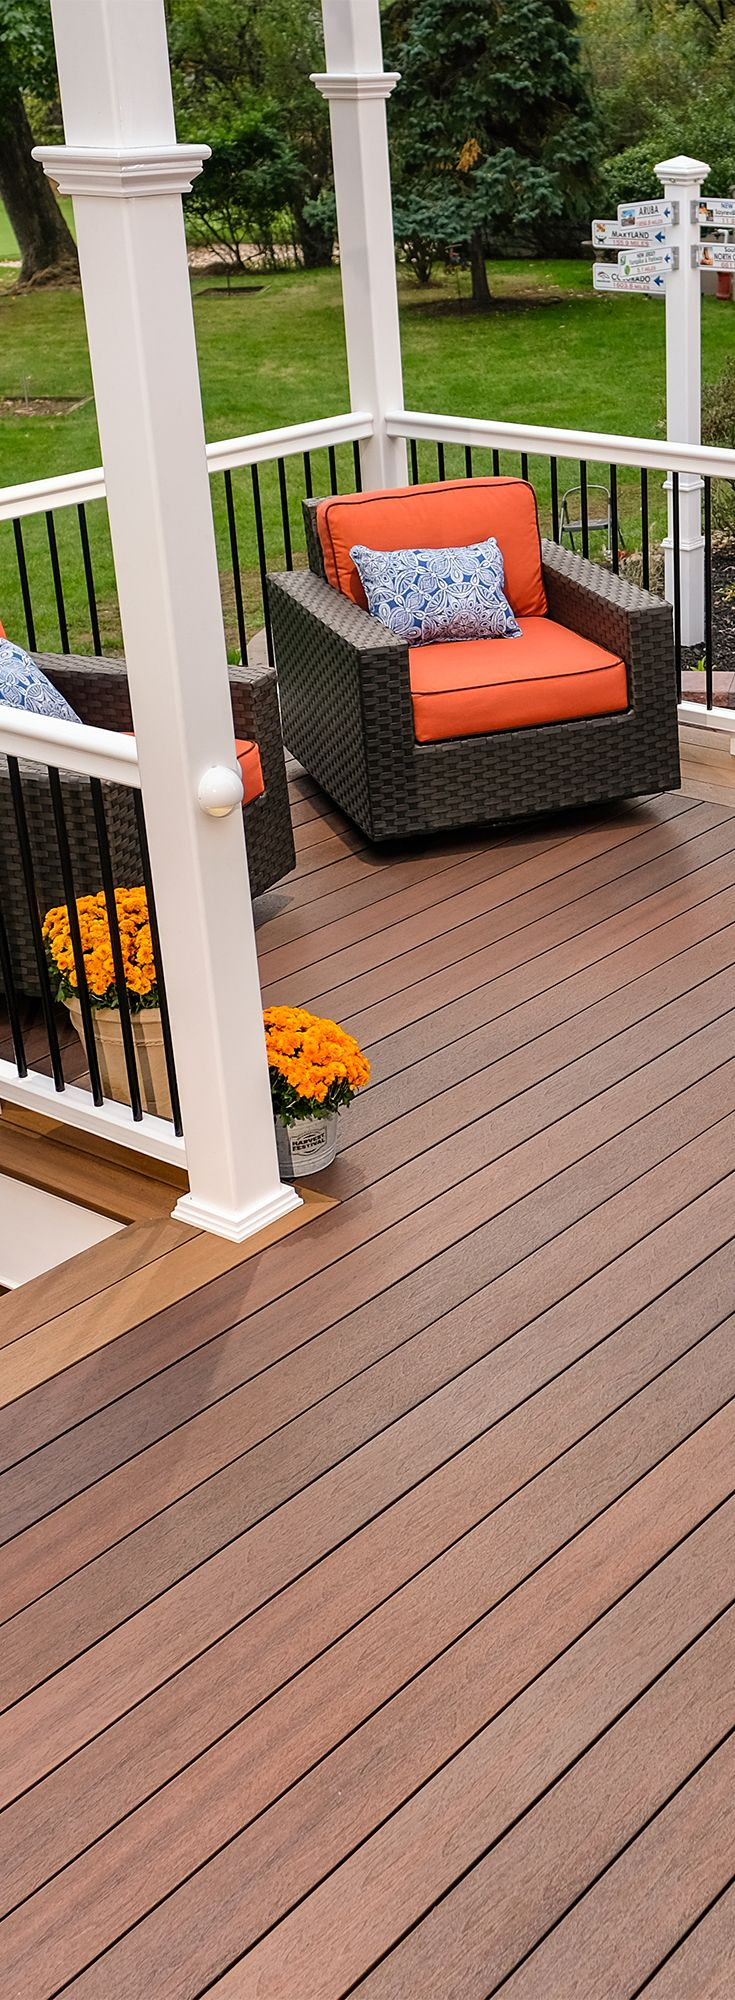 5 free online tools to help make your dream deck a reality for Online deck designer tool